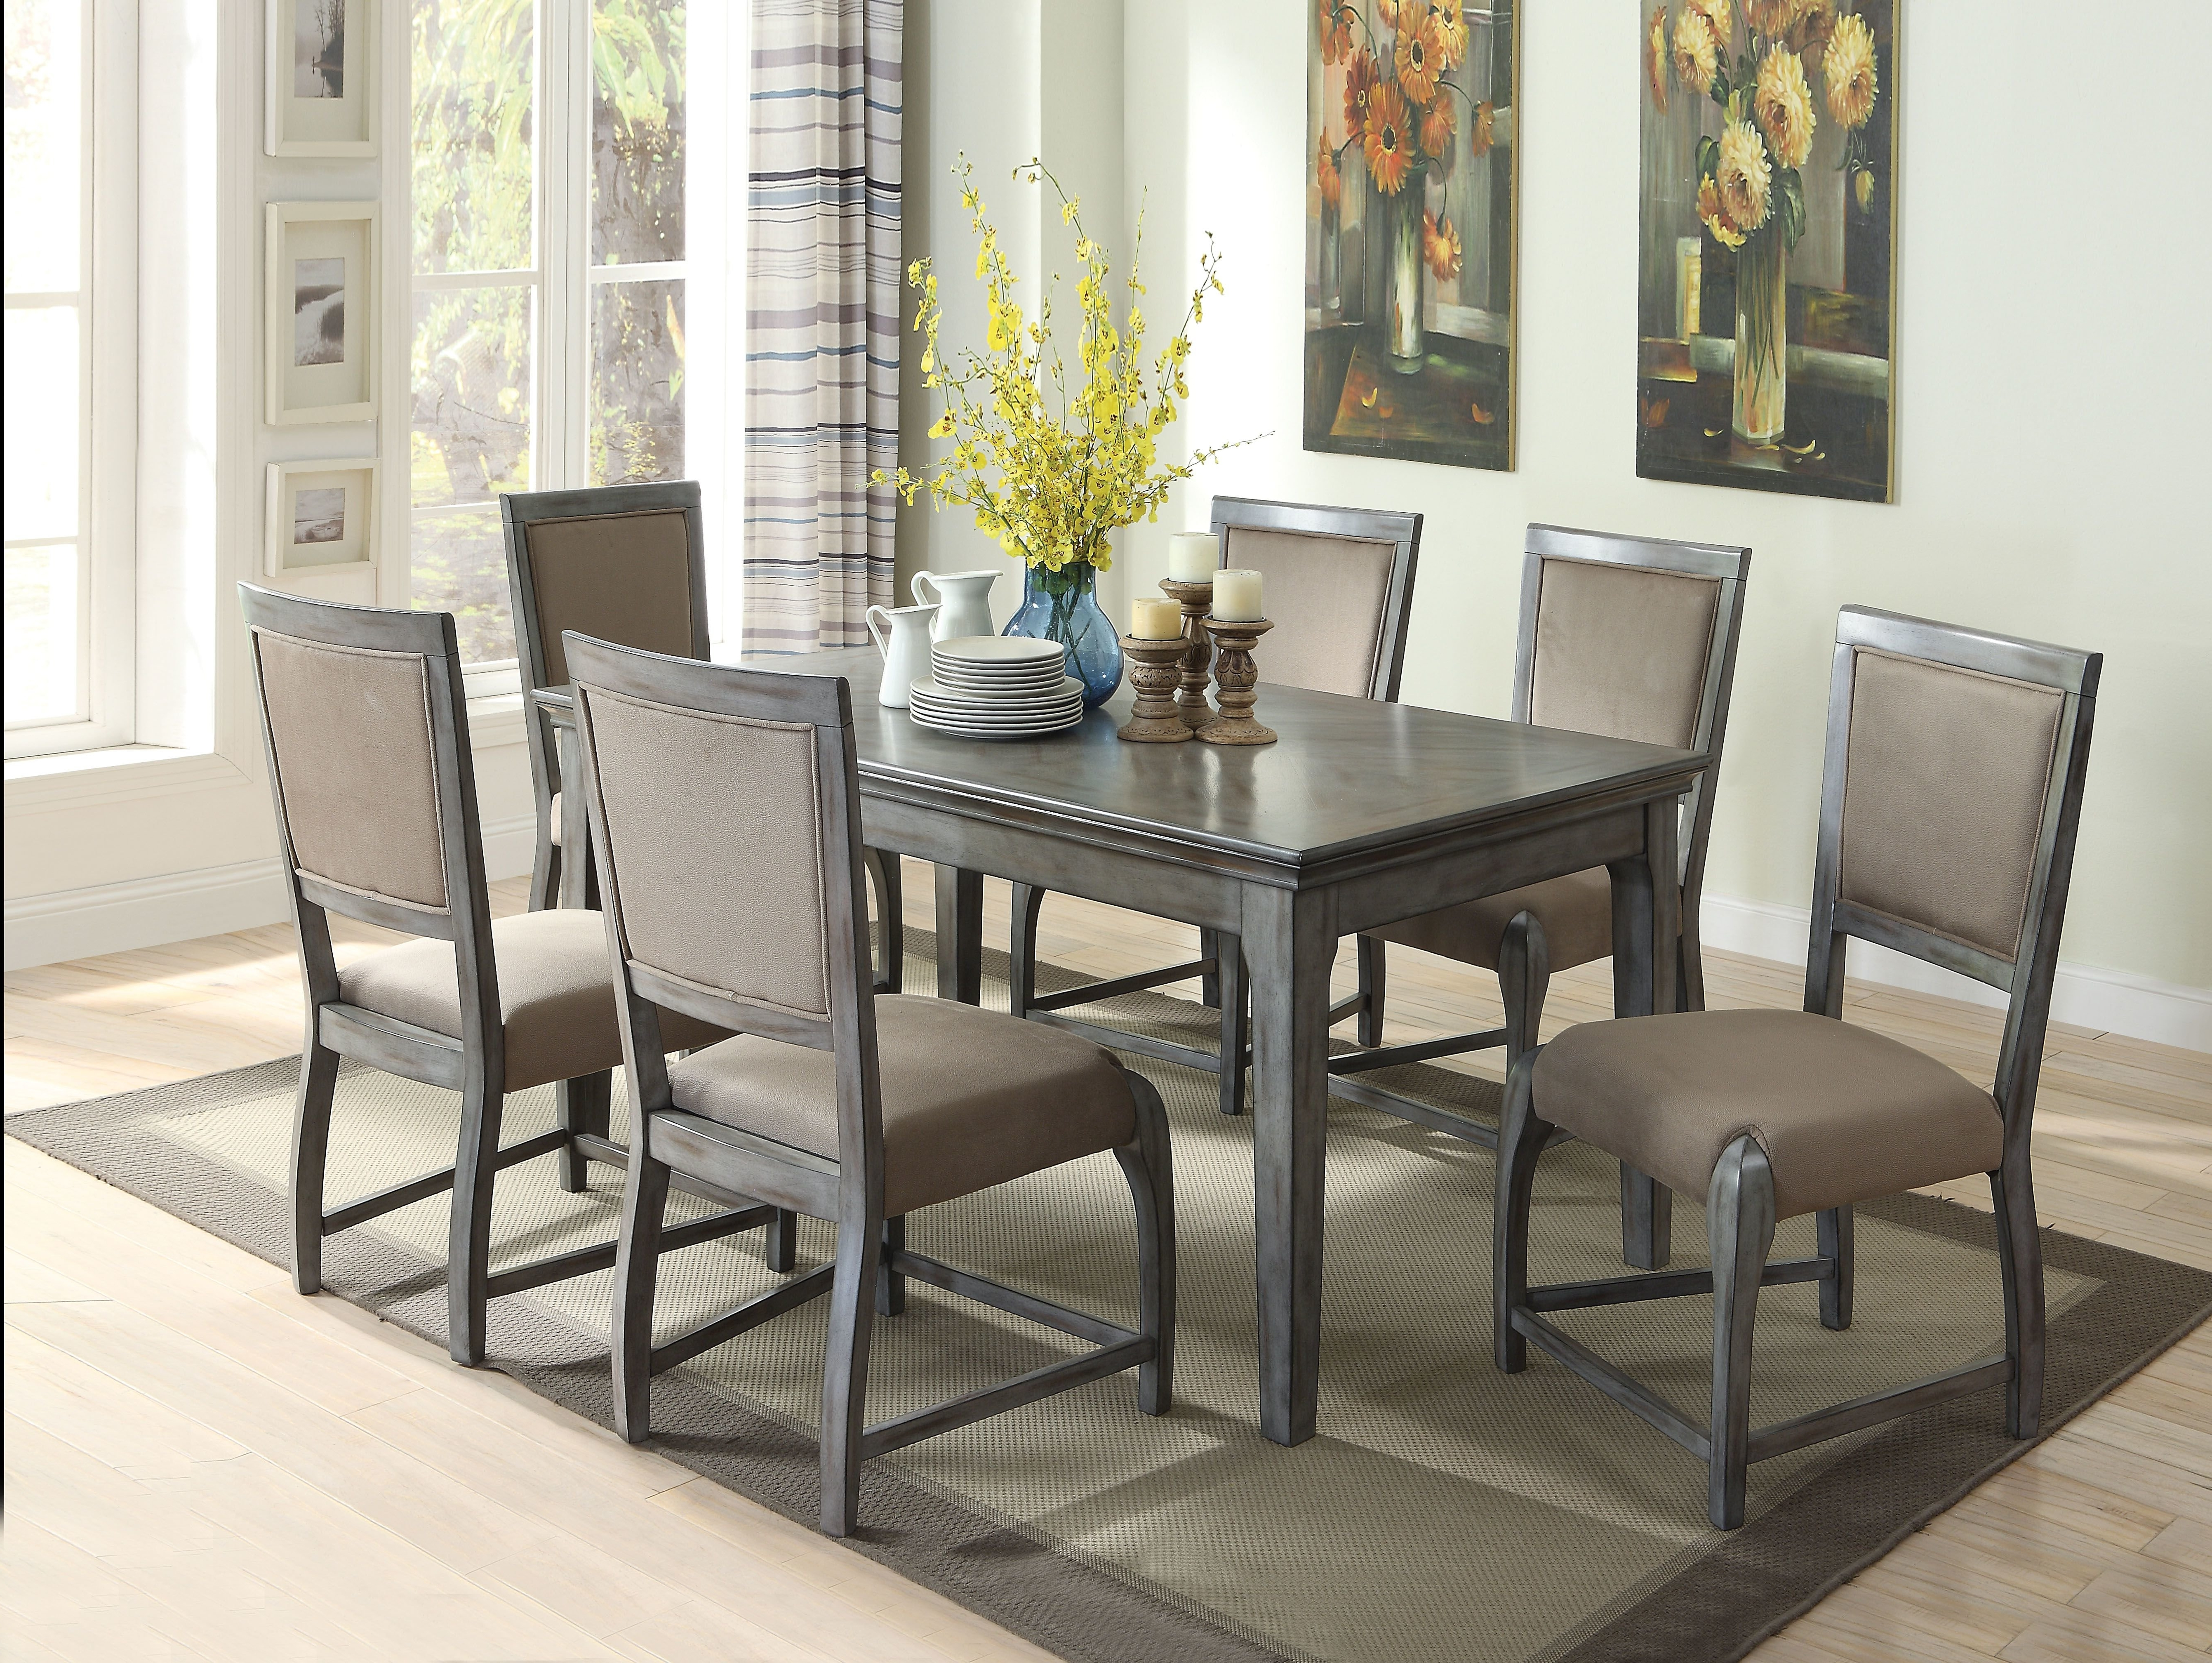 Walden 7 Piece Extension Dining Sets With Trendy Gracie Oaks Vincenza 7 Piece Dining Set (View 11 of 25)